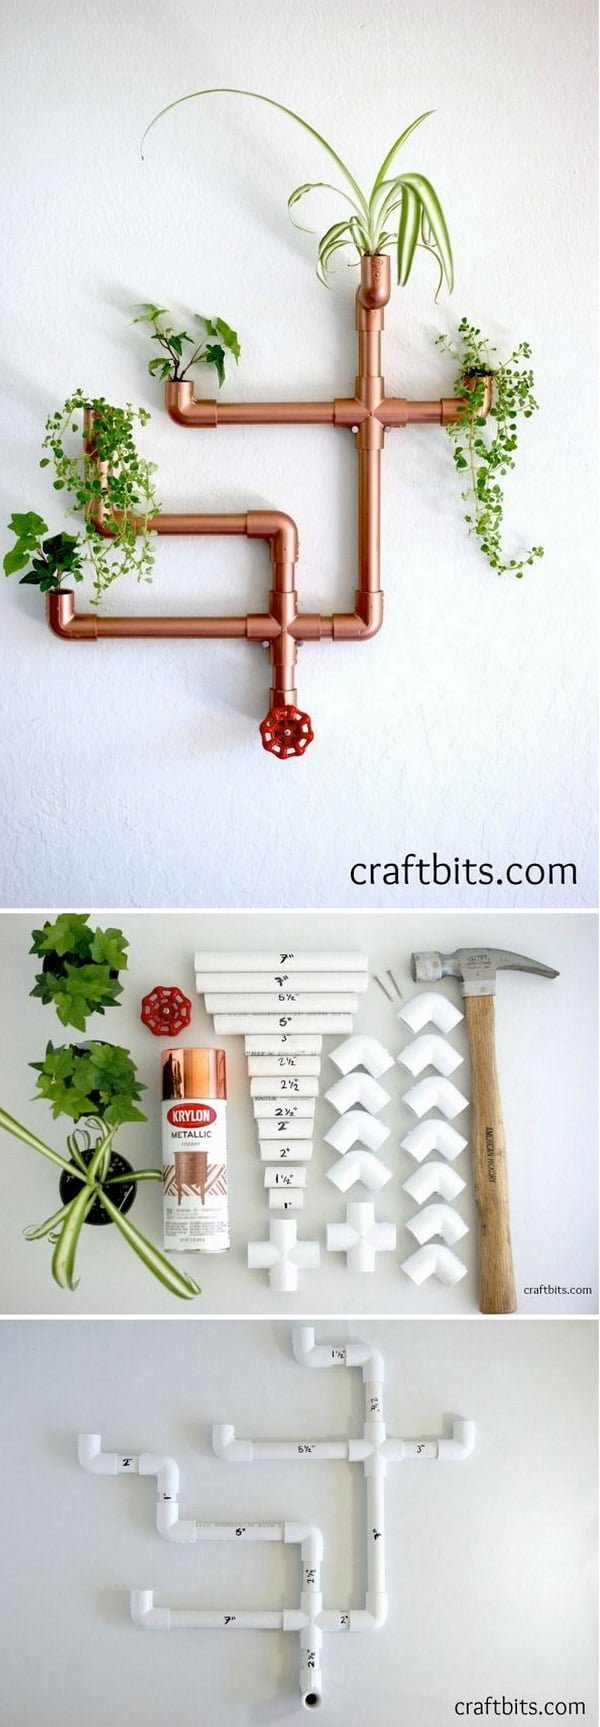 Check out how to make this cute DIY copper pipe wall planter @istandarddesign